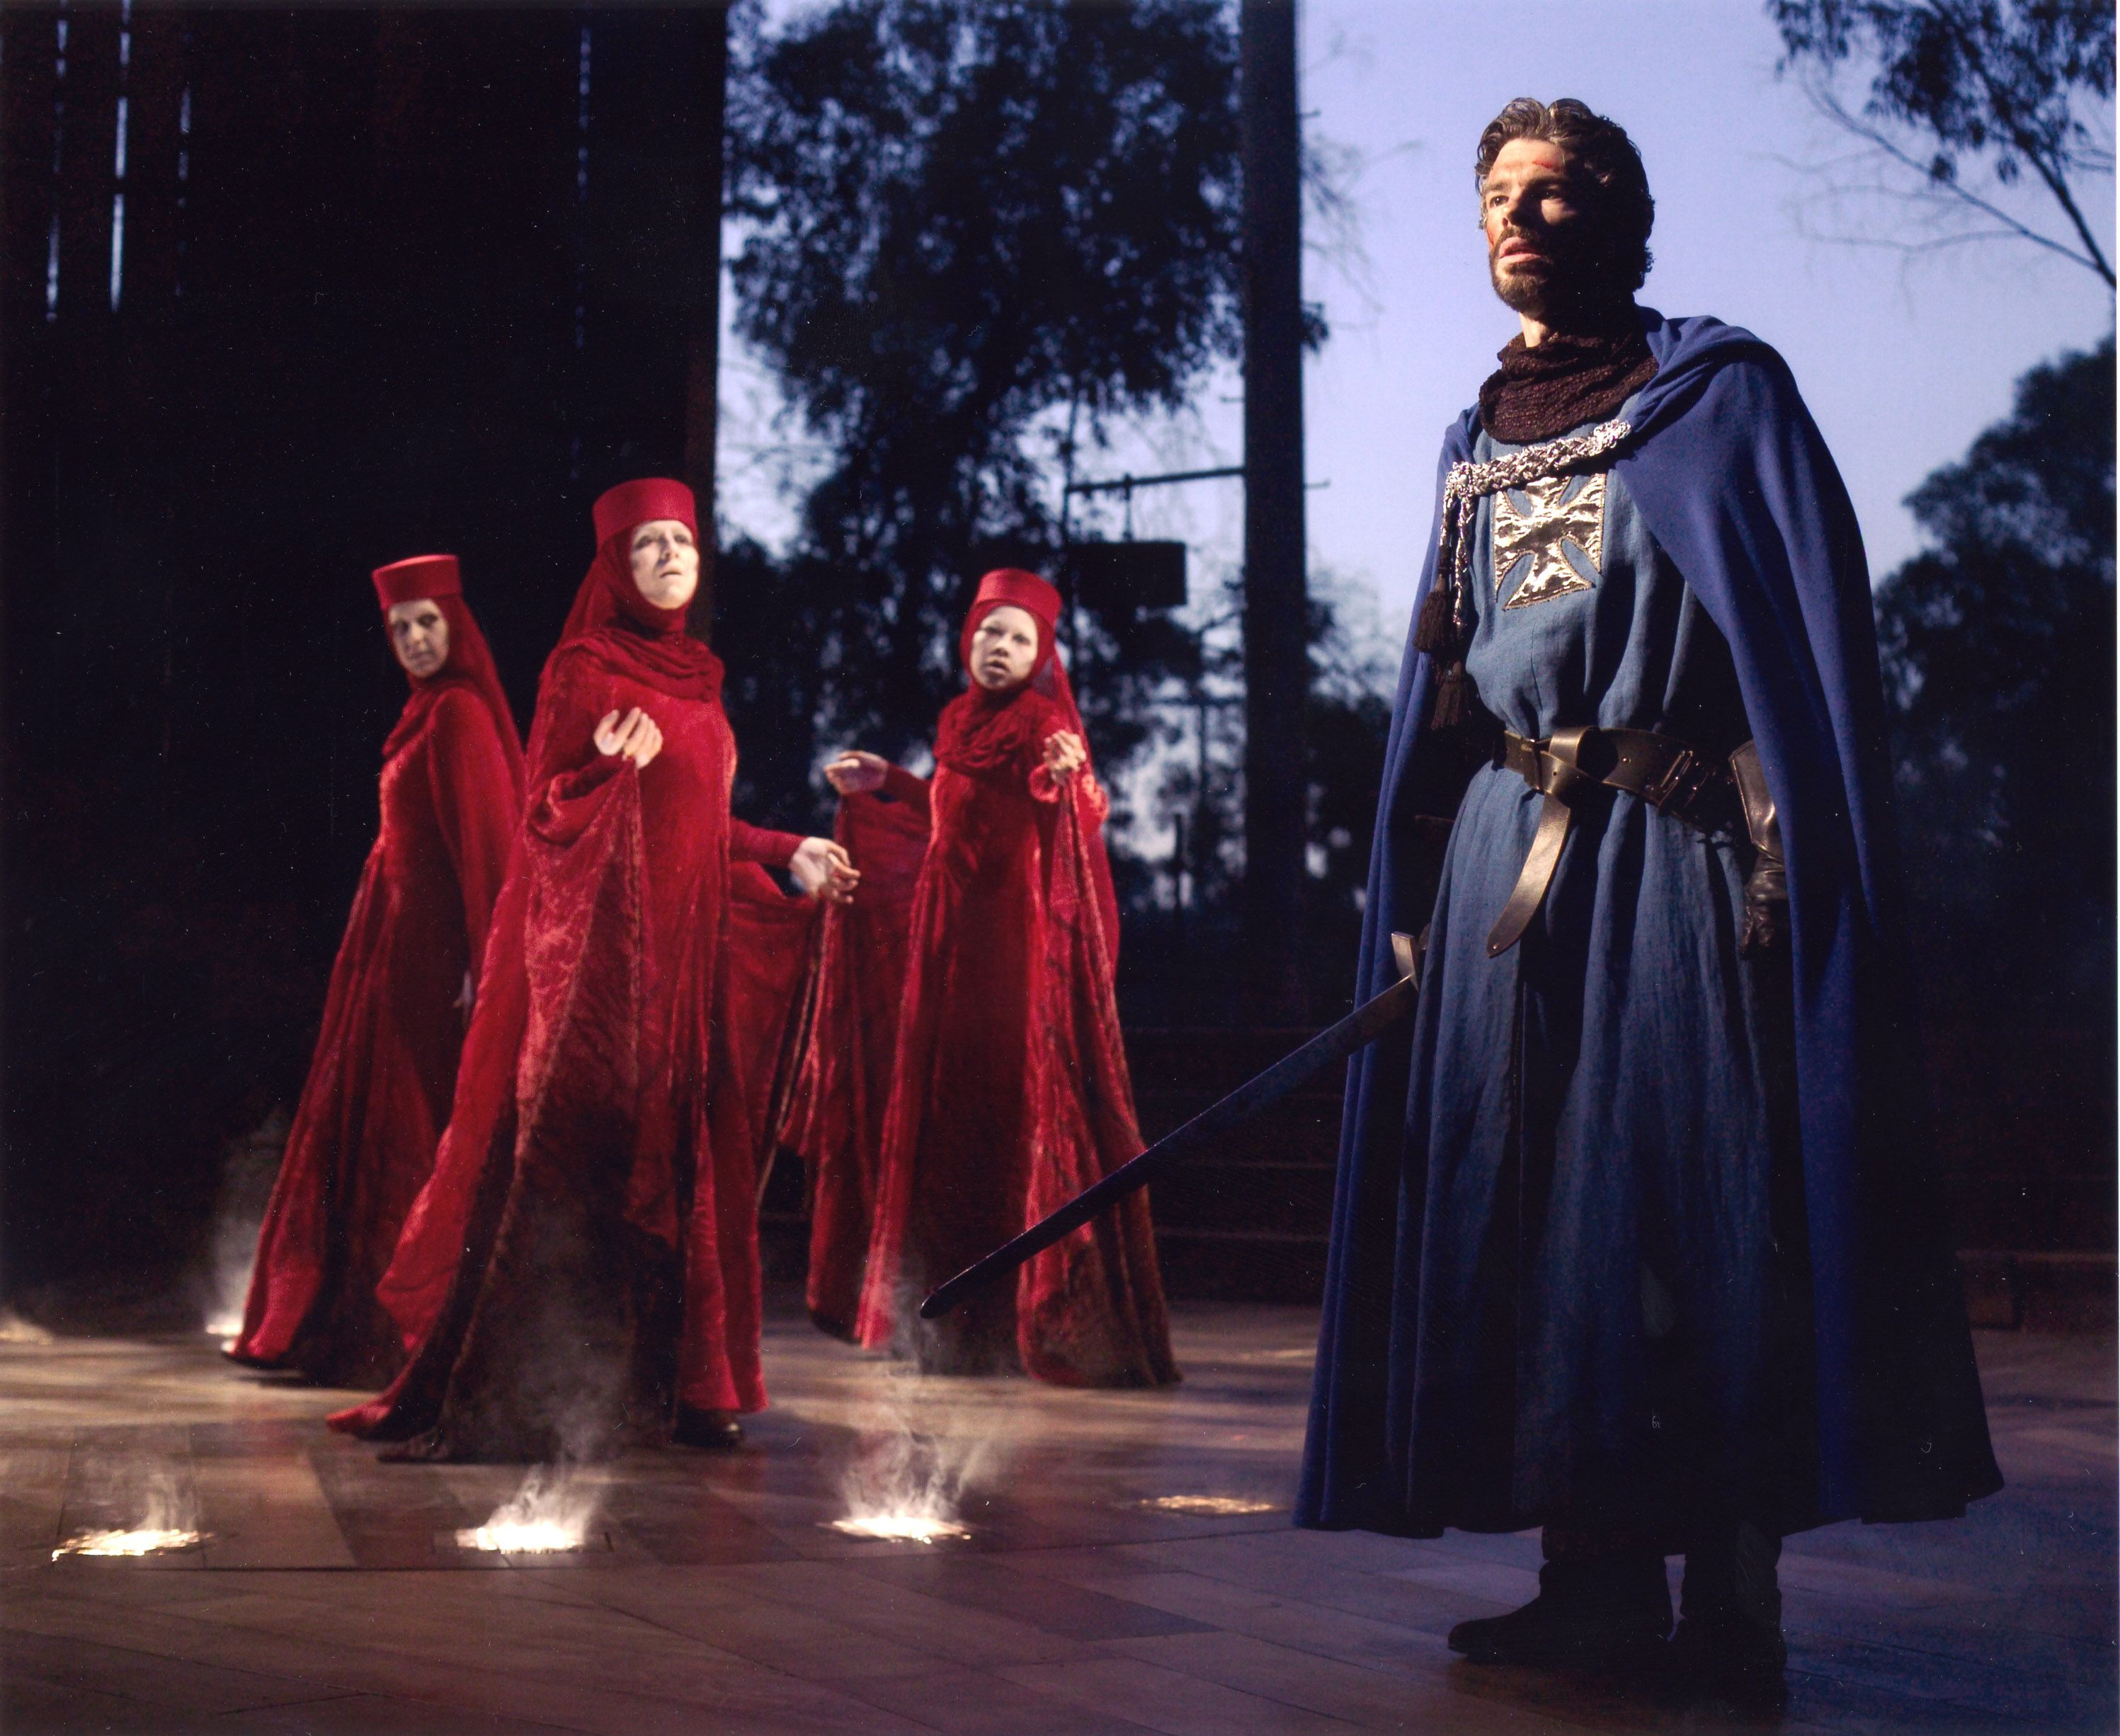 The influence of the witches on macbeth in shakespeares macbeth